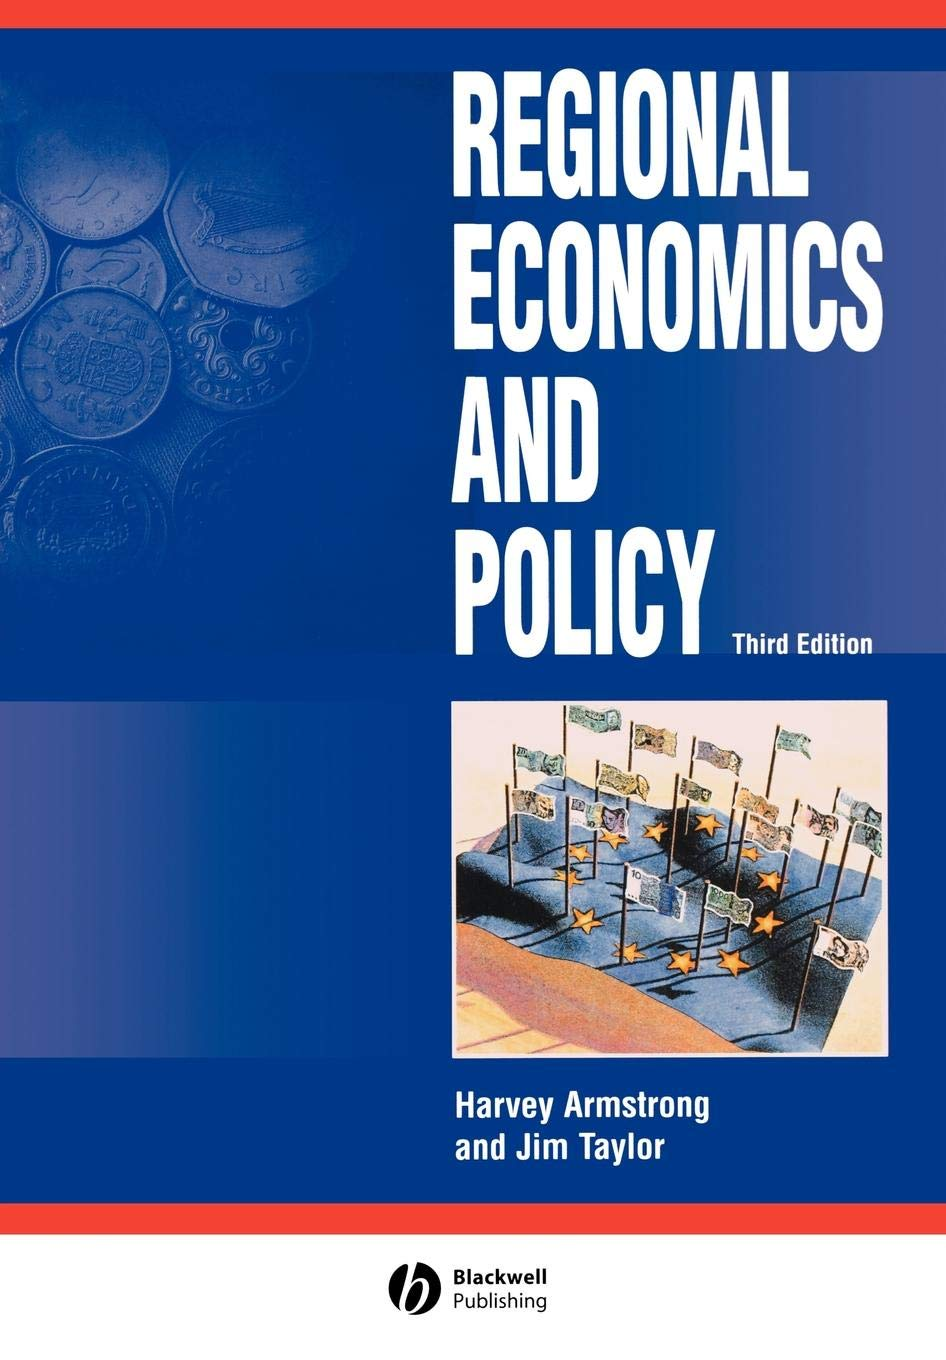 Regional Economics And Policy 3rd Edition